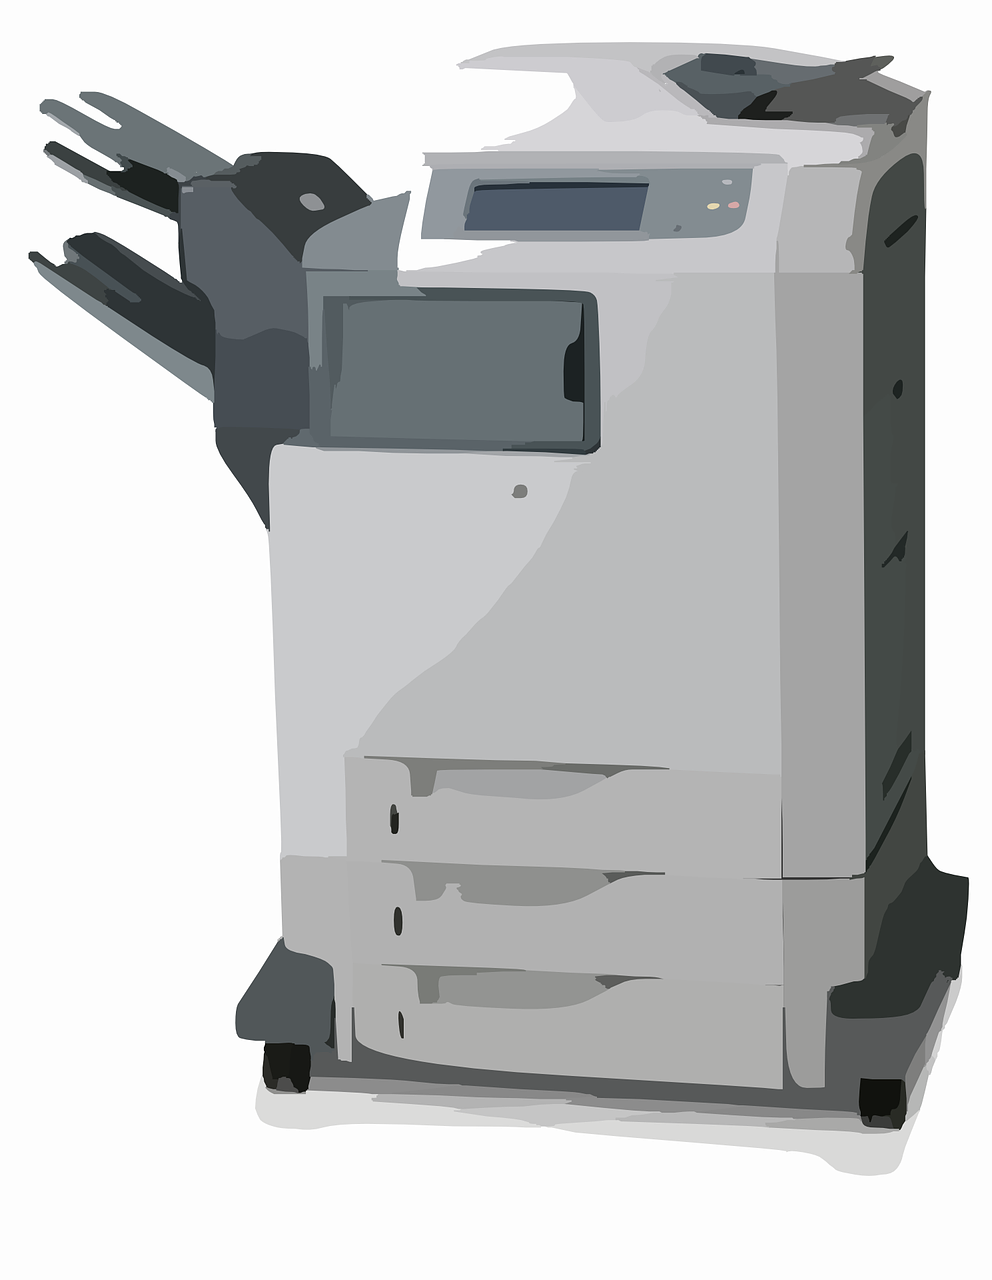 copier scanner printer free photo